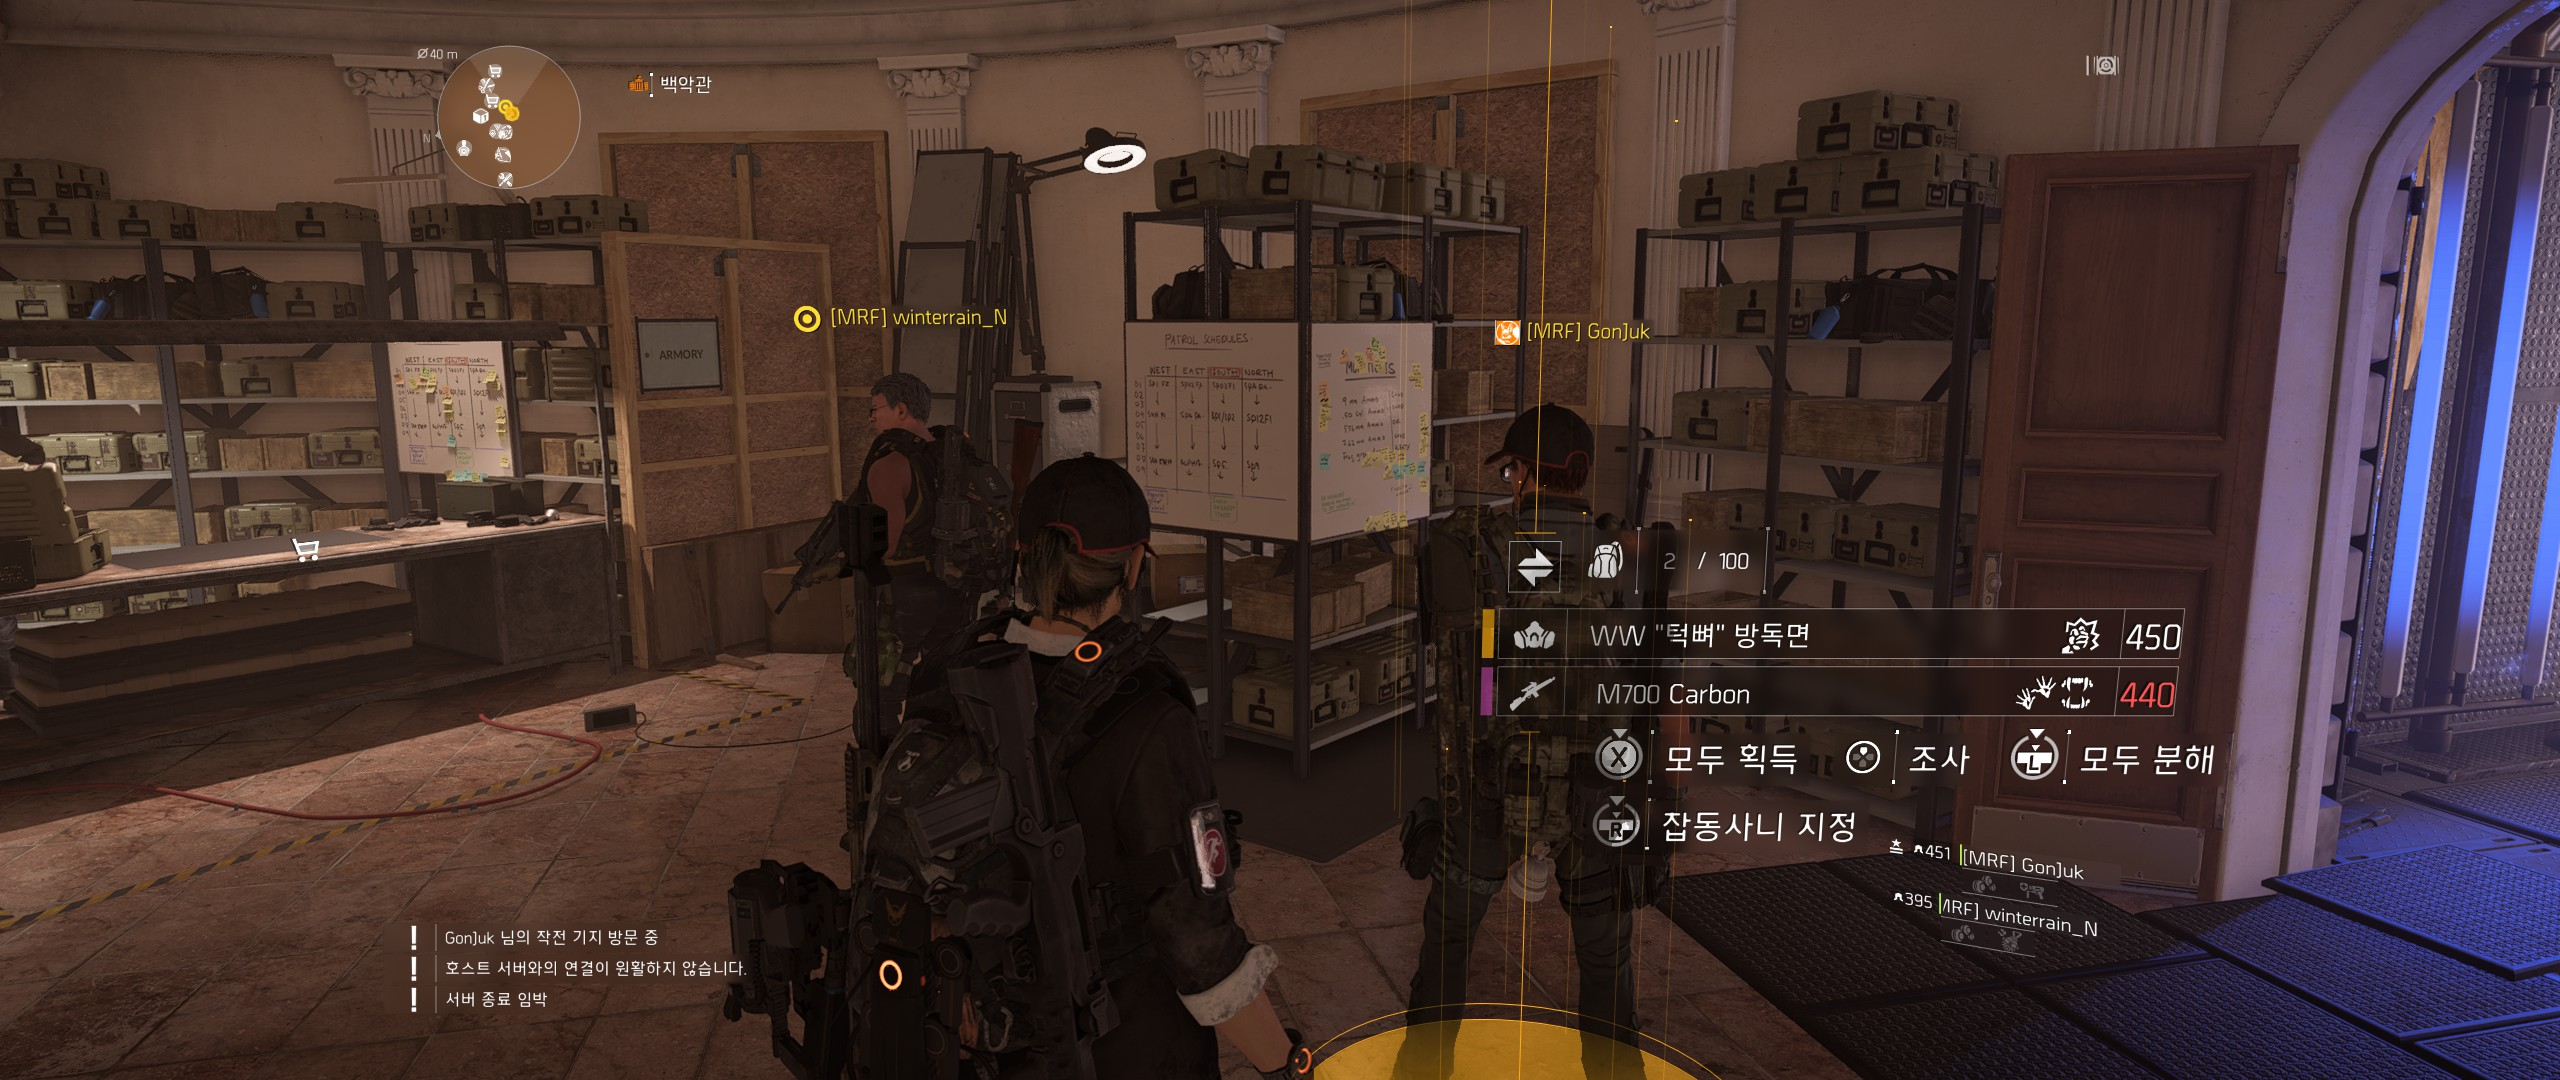 Tom Clancy's The Division® 22019-3-23-21-58-25.jpg